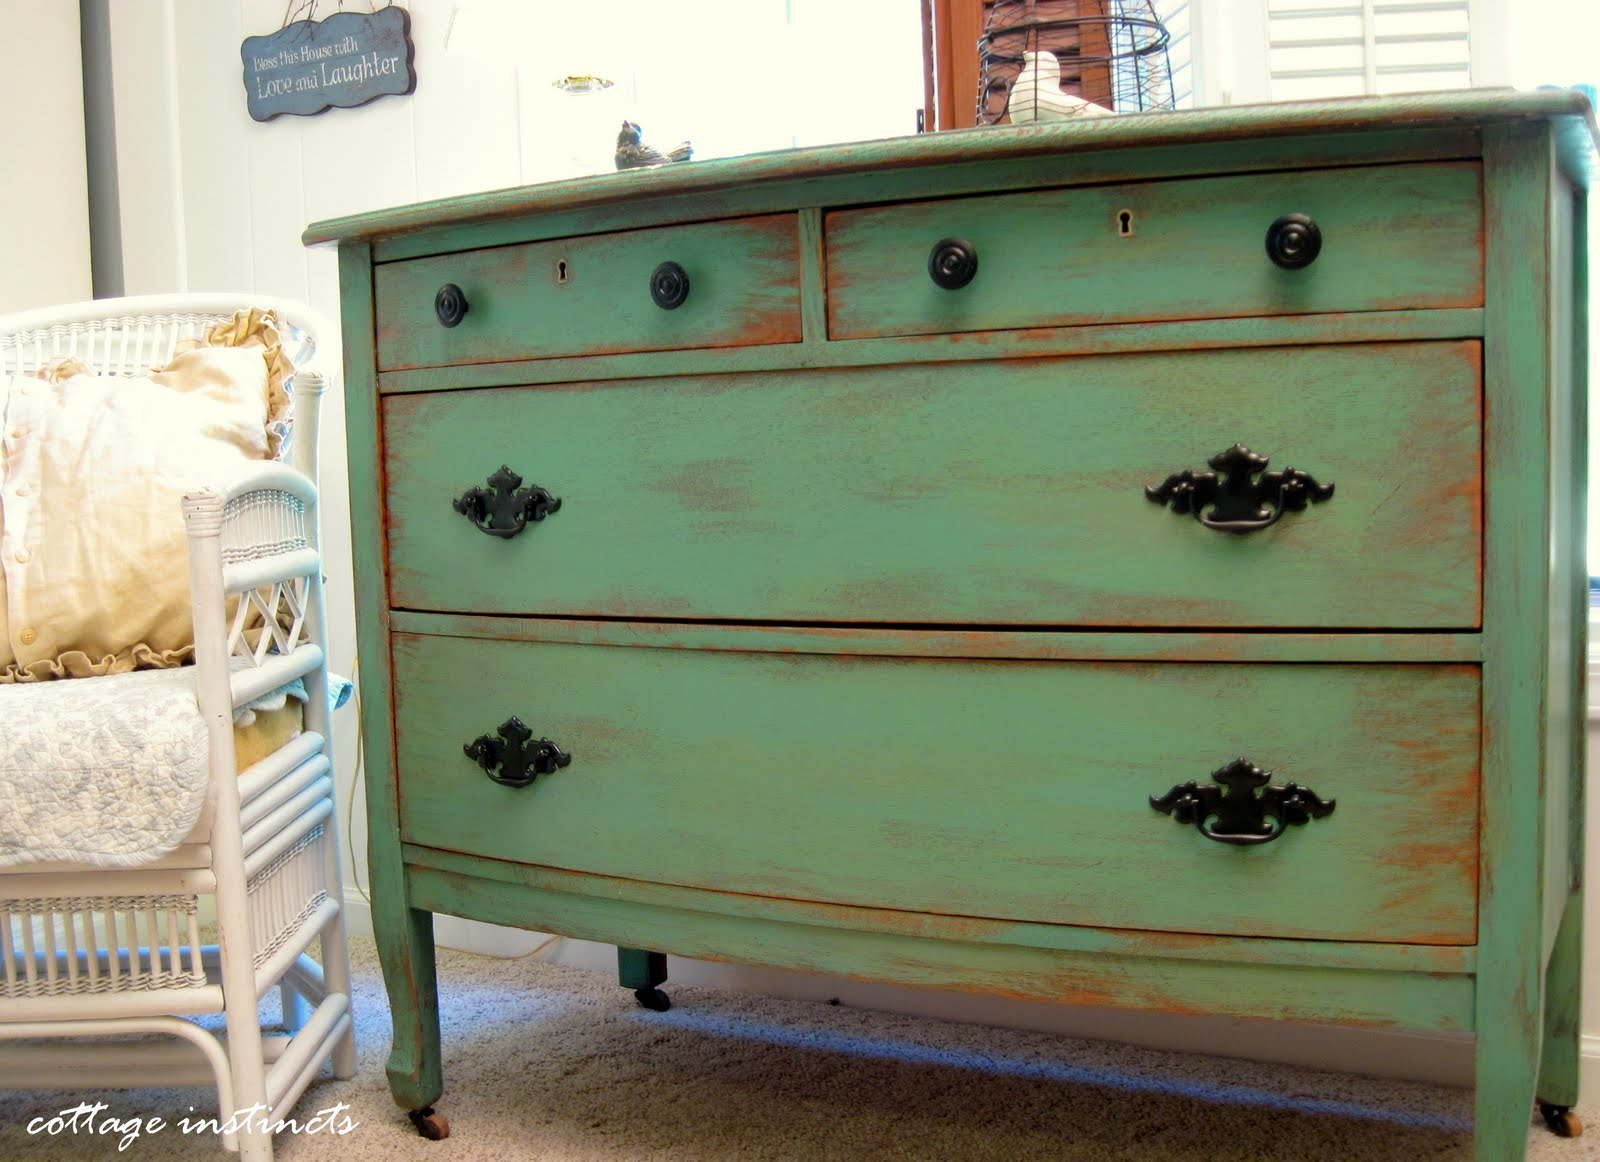 Cottage instincts how i paint and distress a dresser in Best color to paint dresser